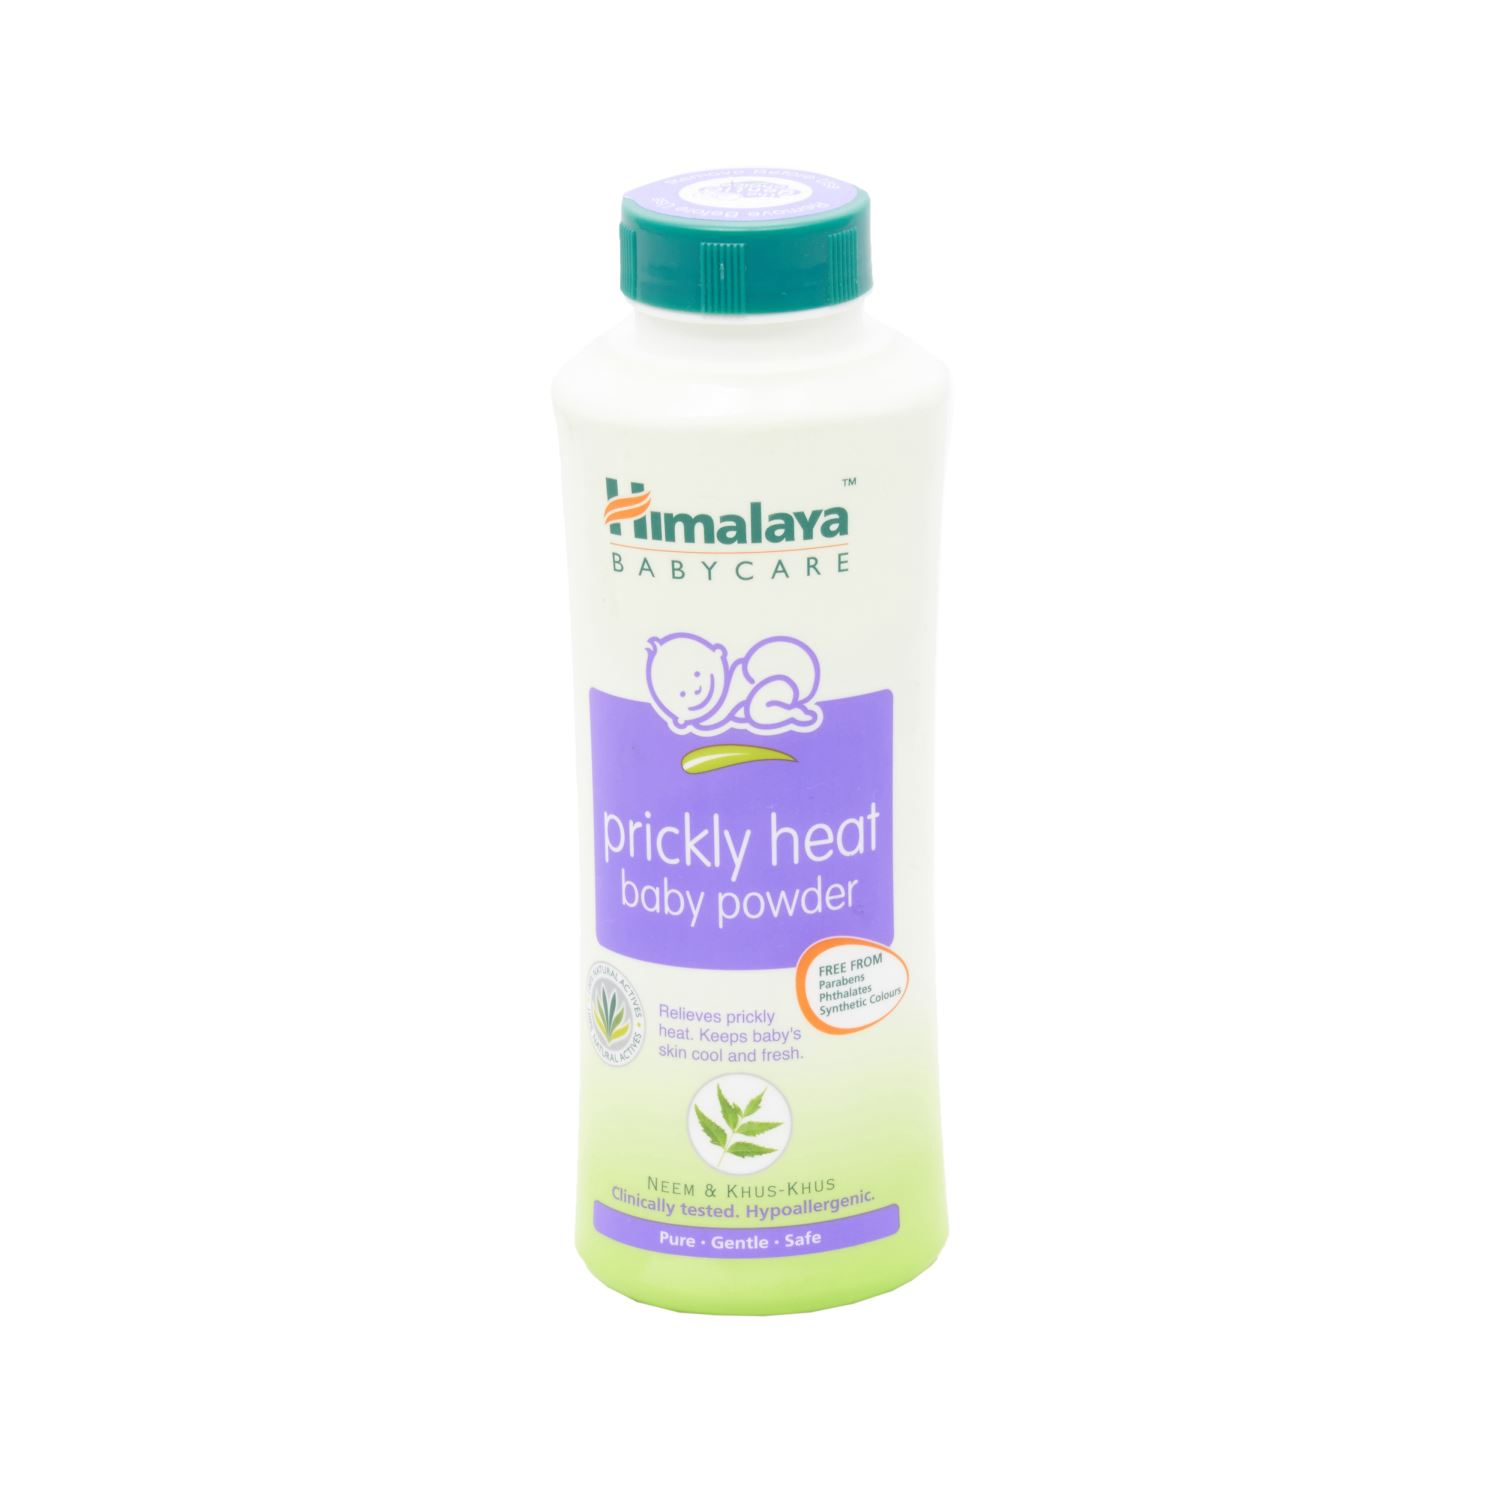 Himalaya Prickly Heat Baby Powder - 100 gm